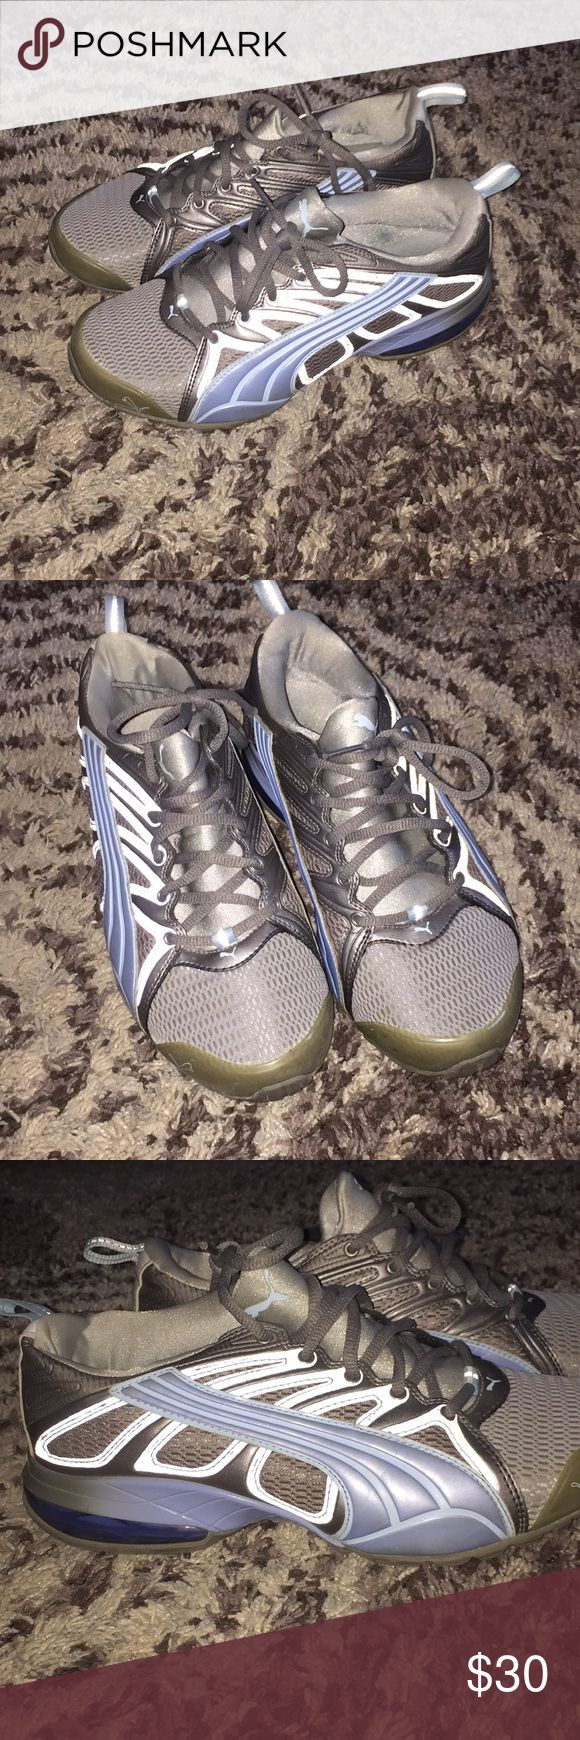 Puma running shoes Worn but In good condition Puma Shoes Athletic Shoes